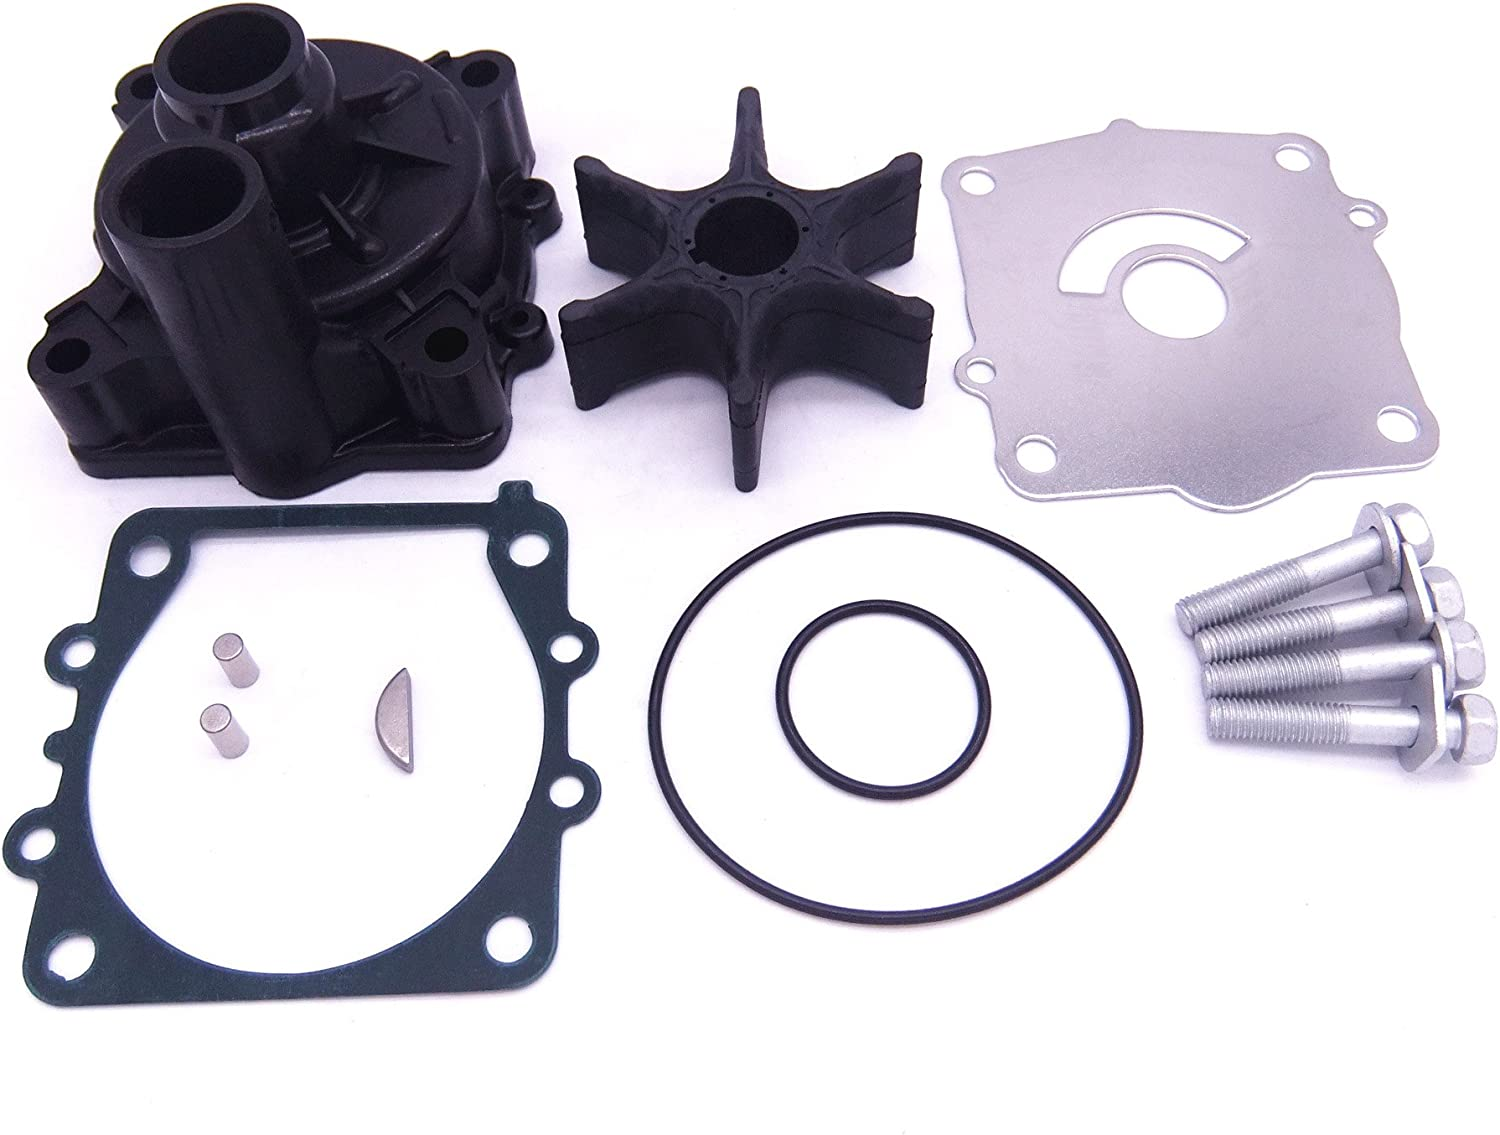 68VW0078 68VW007800 Water Pump Kit For Yamaha 115HP F115 Boat Outboard Motors